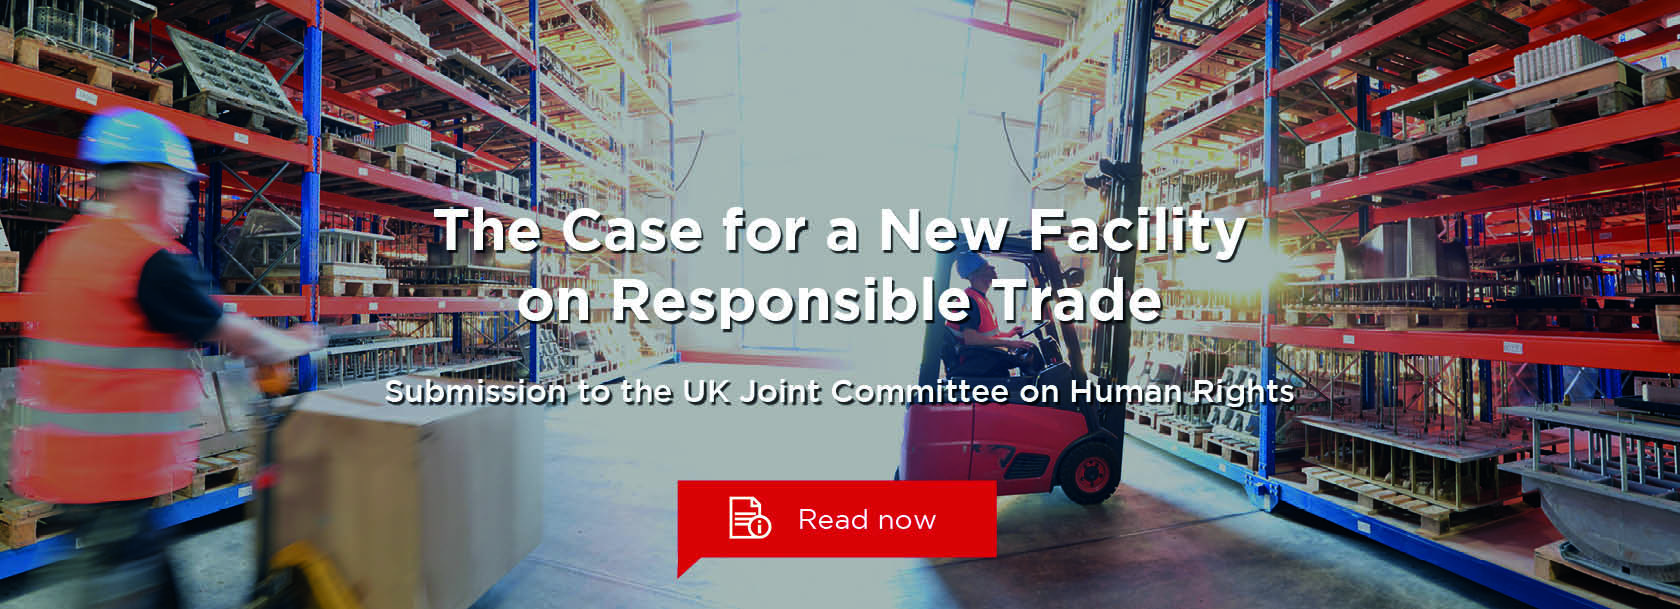 The Case for a New UK Facility on Responsible Trade